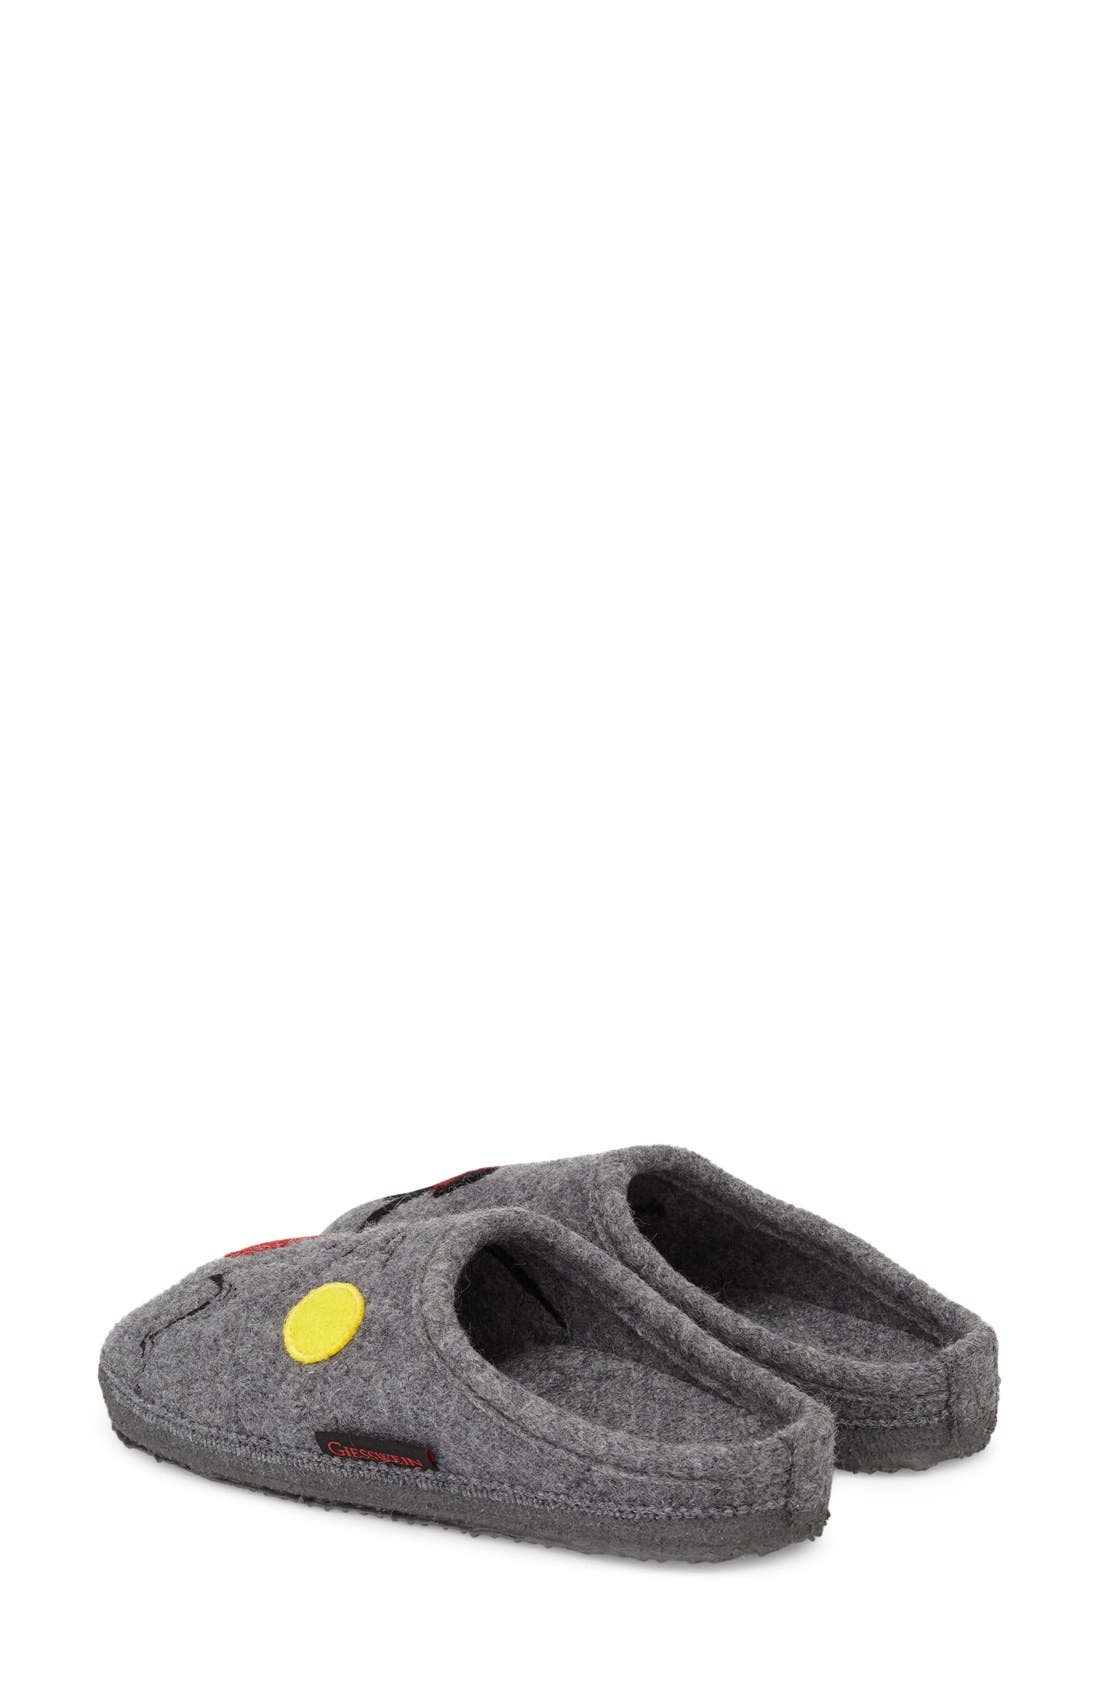 Molly Slipper,                             Alternate thumbnail 2, color,                             Slate Wool